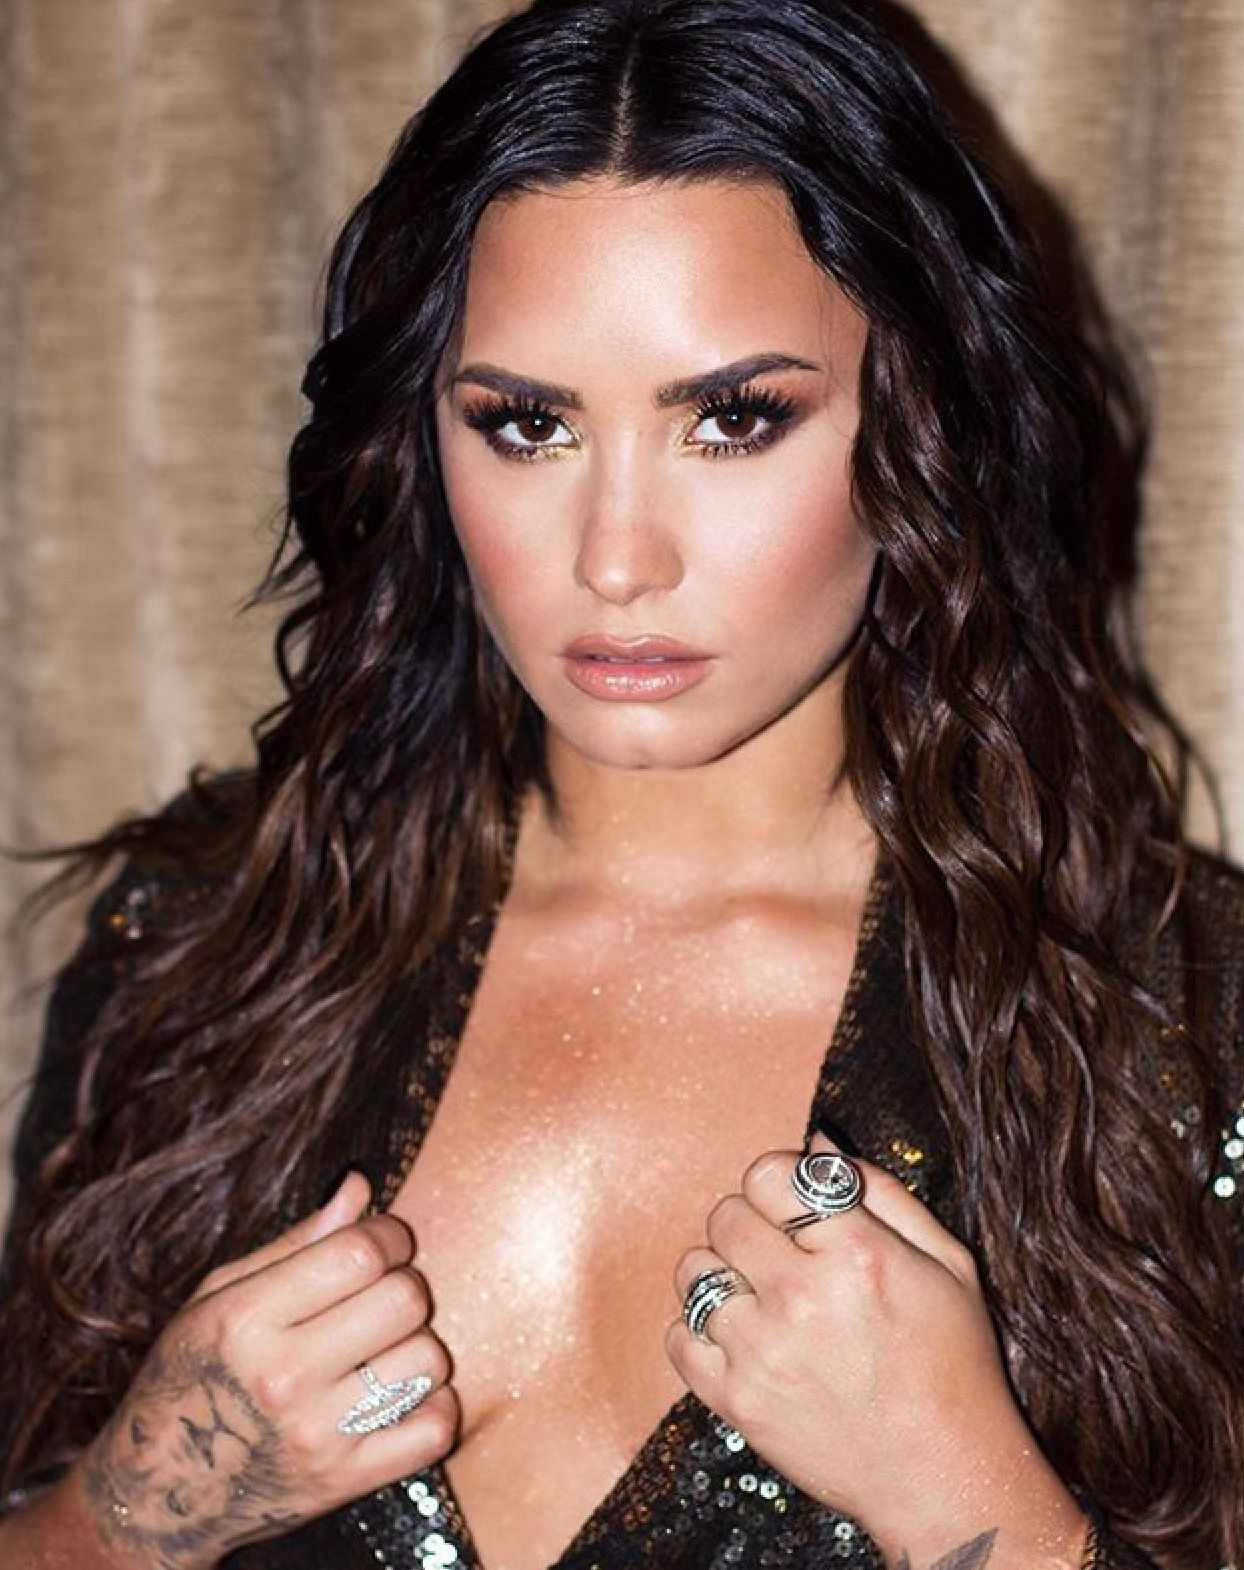 Images for fucking demi lovato